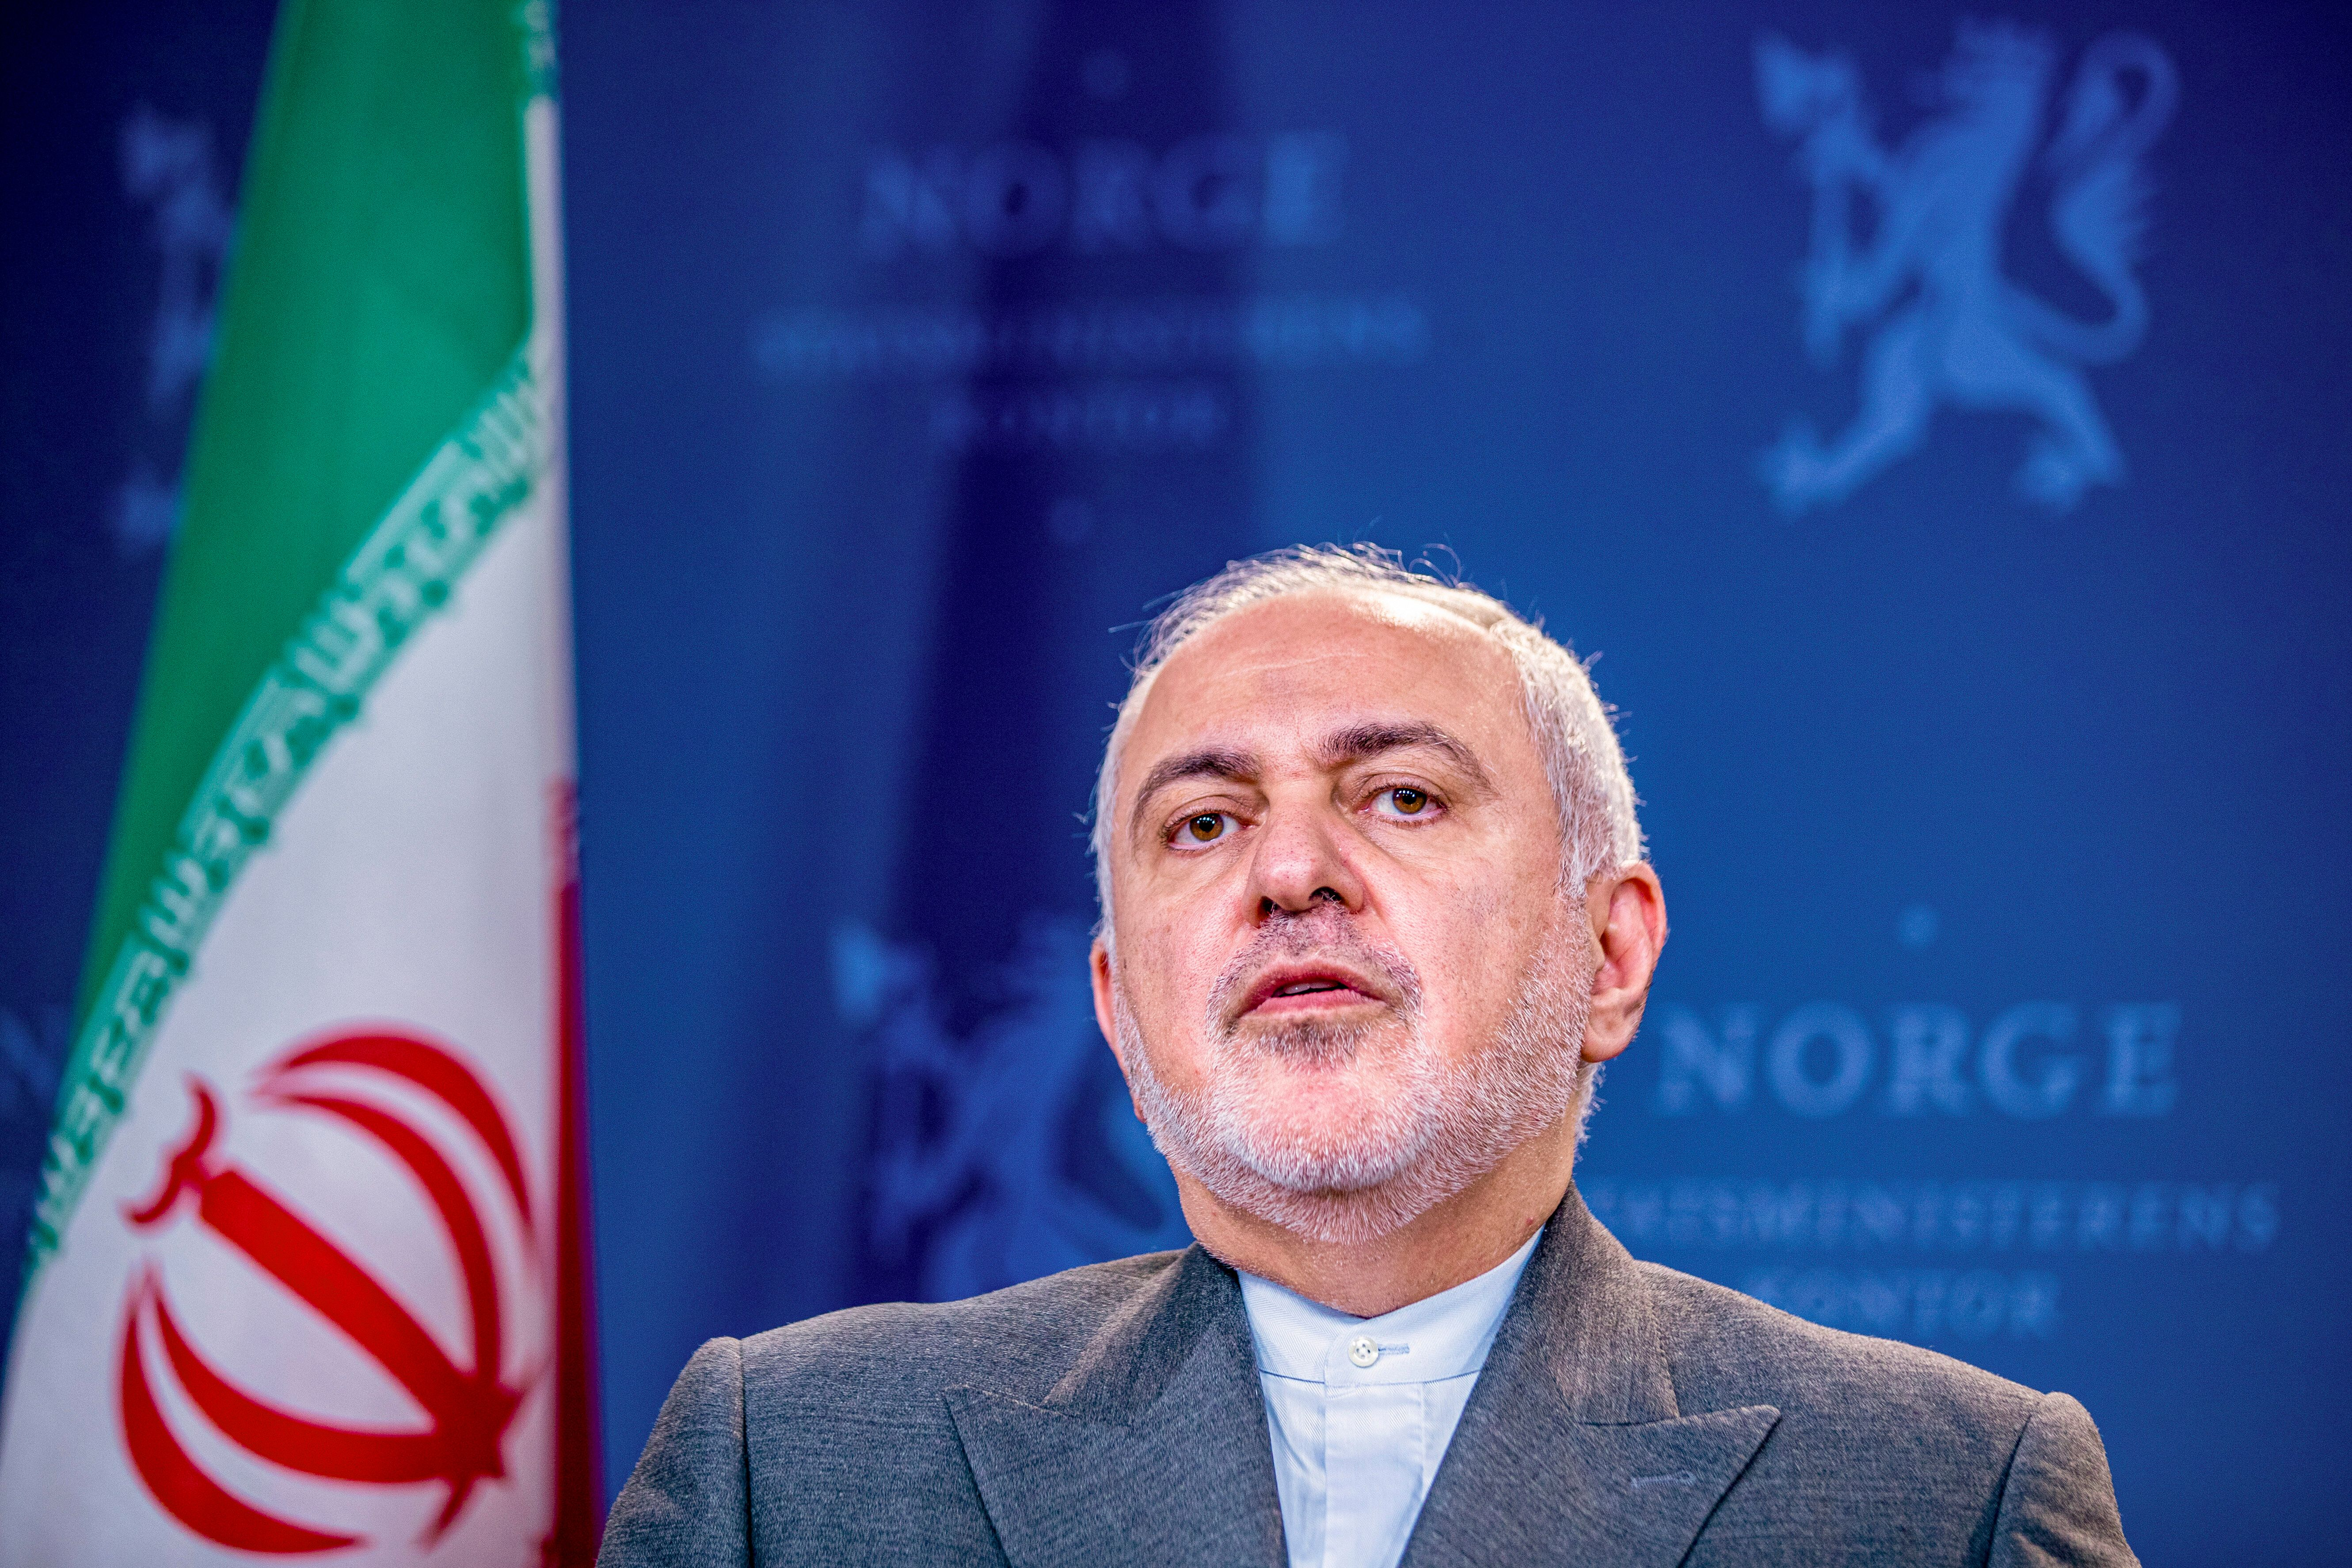 Iran's Foreign Minister Mohammad Javad Zarif attends a joint press conference after talks with Norway's Foreign Minister Ine